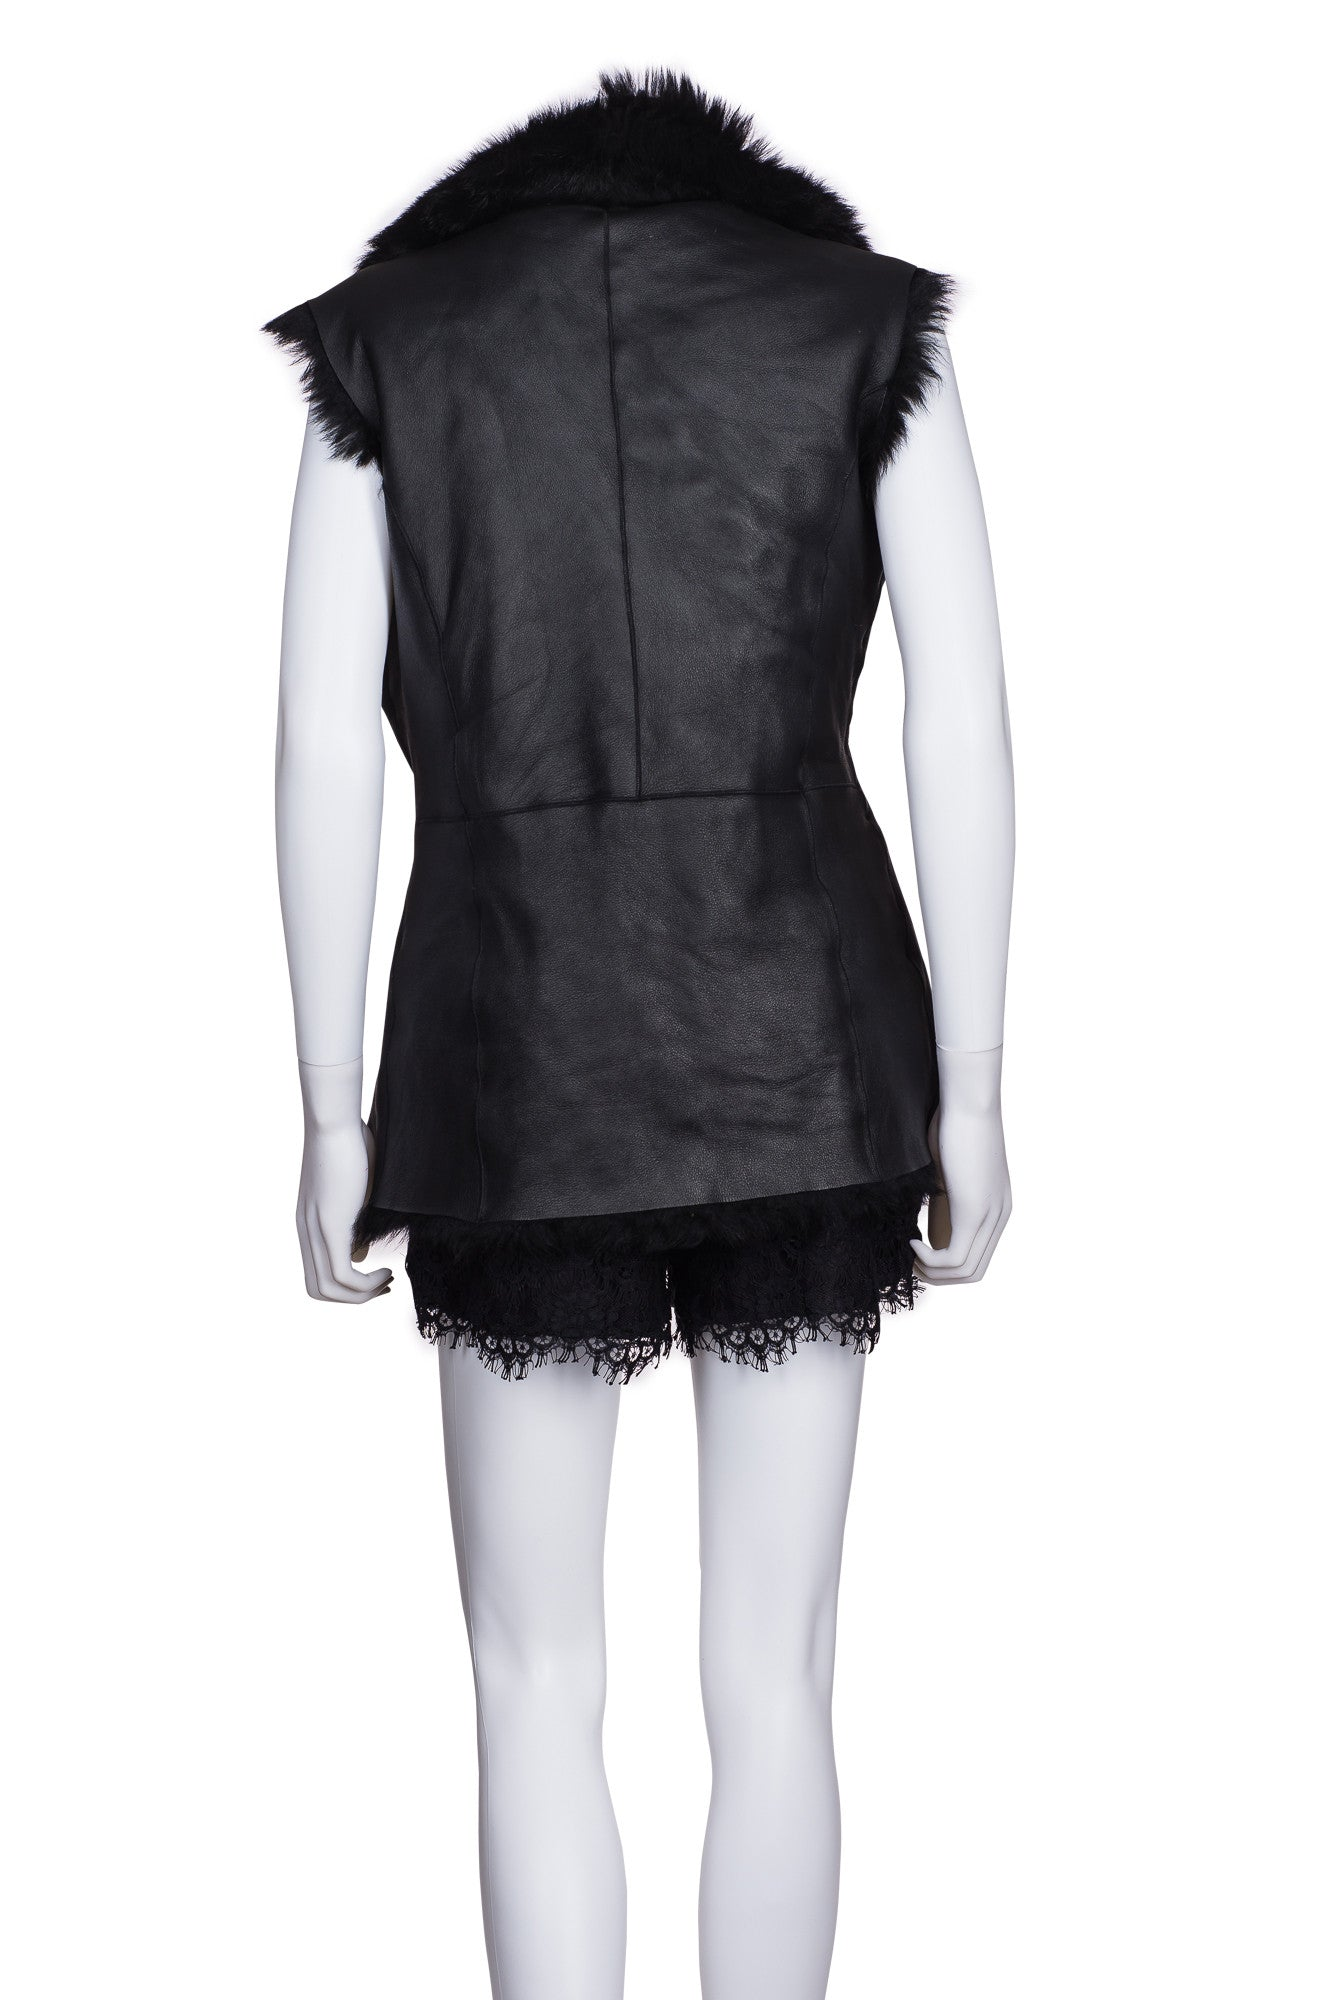 L.K. BENNETT Reversible Sheep Skin Leather Vest